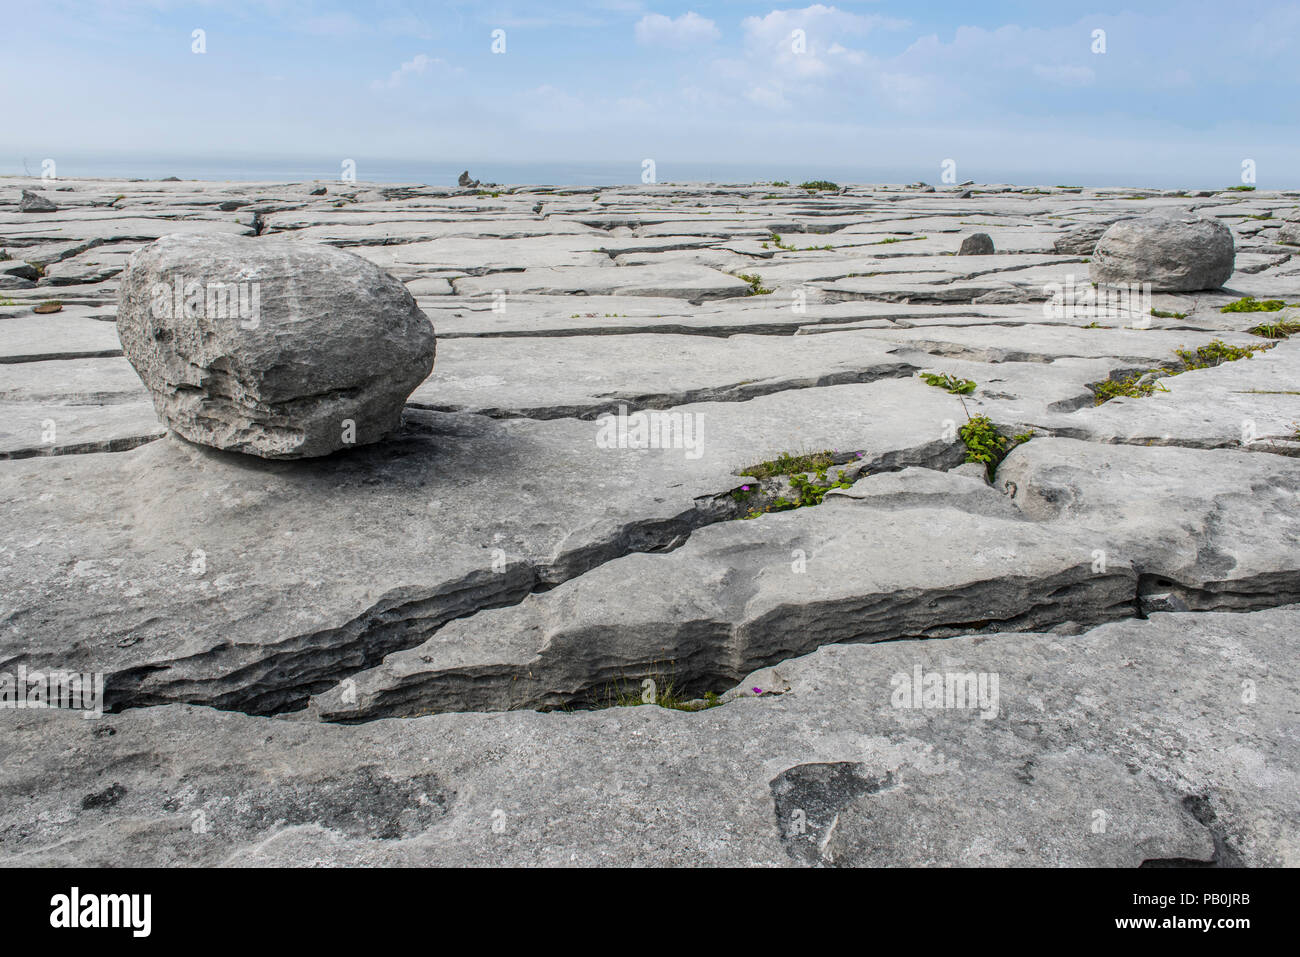 Rocks and columns in Burren karst landscape, Ballyvaughan, County Clare, Republic of Ireland - Stock Image